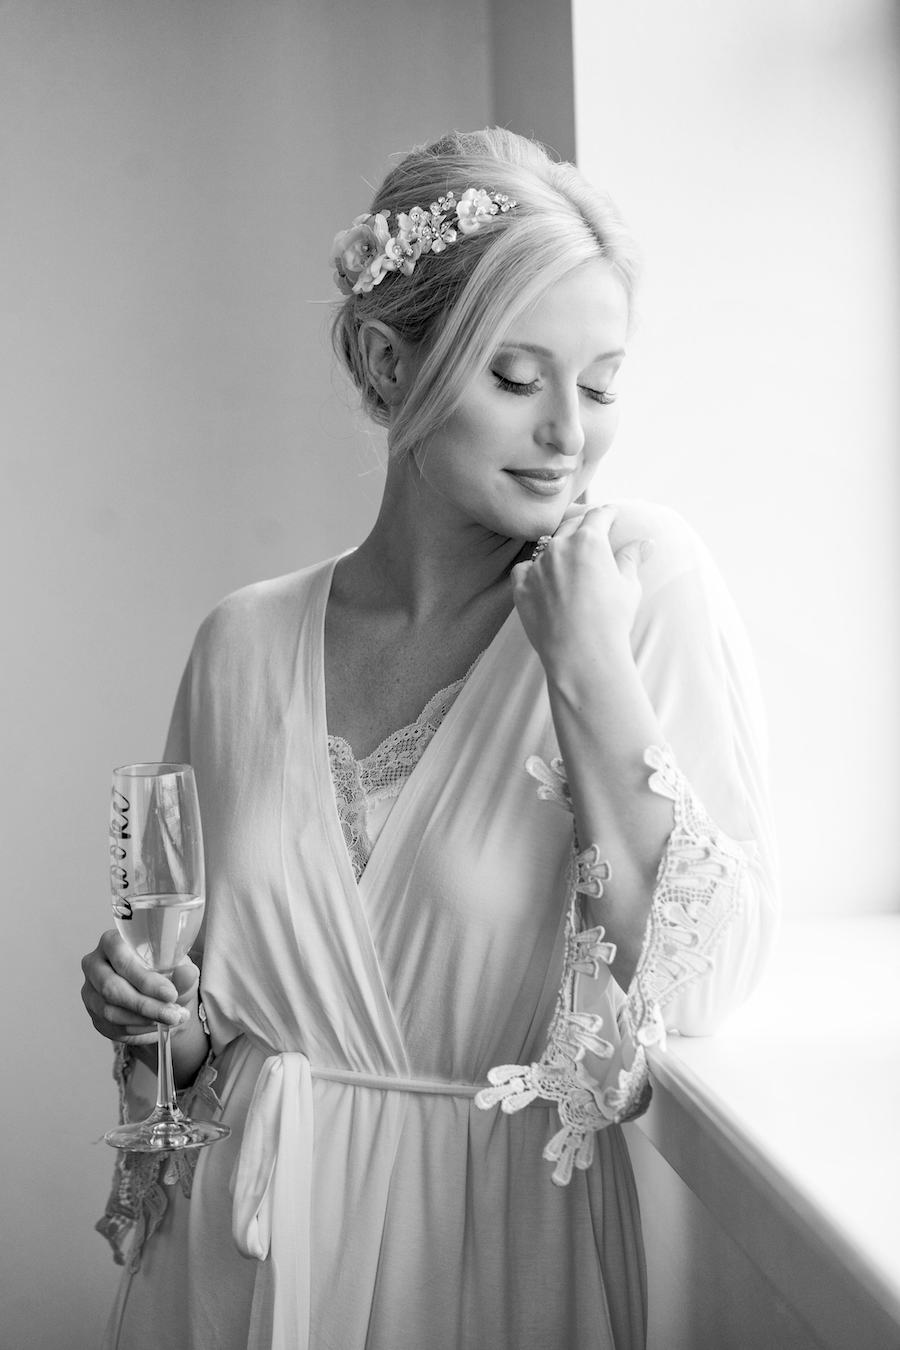 A bride getting ready the morning of her wedding